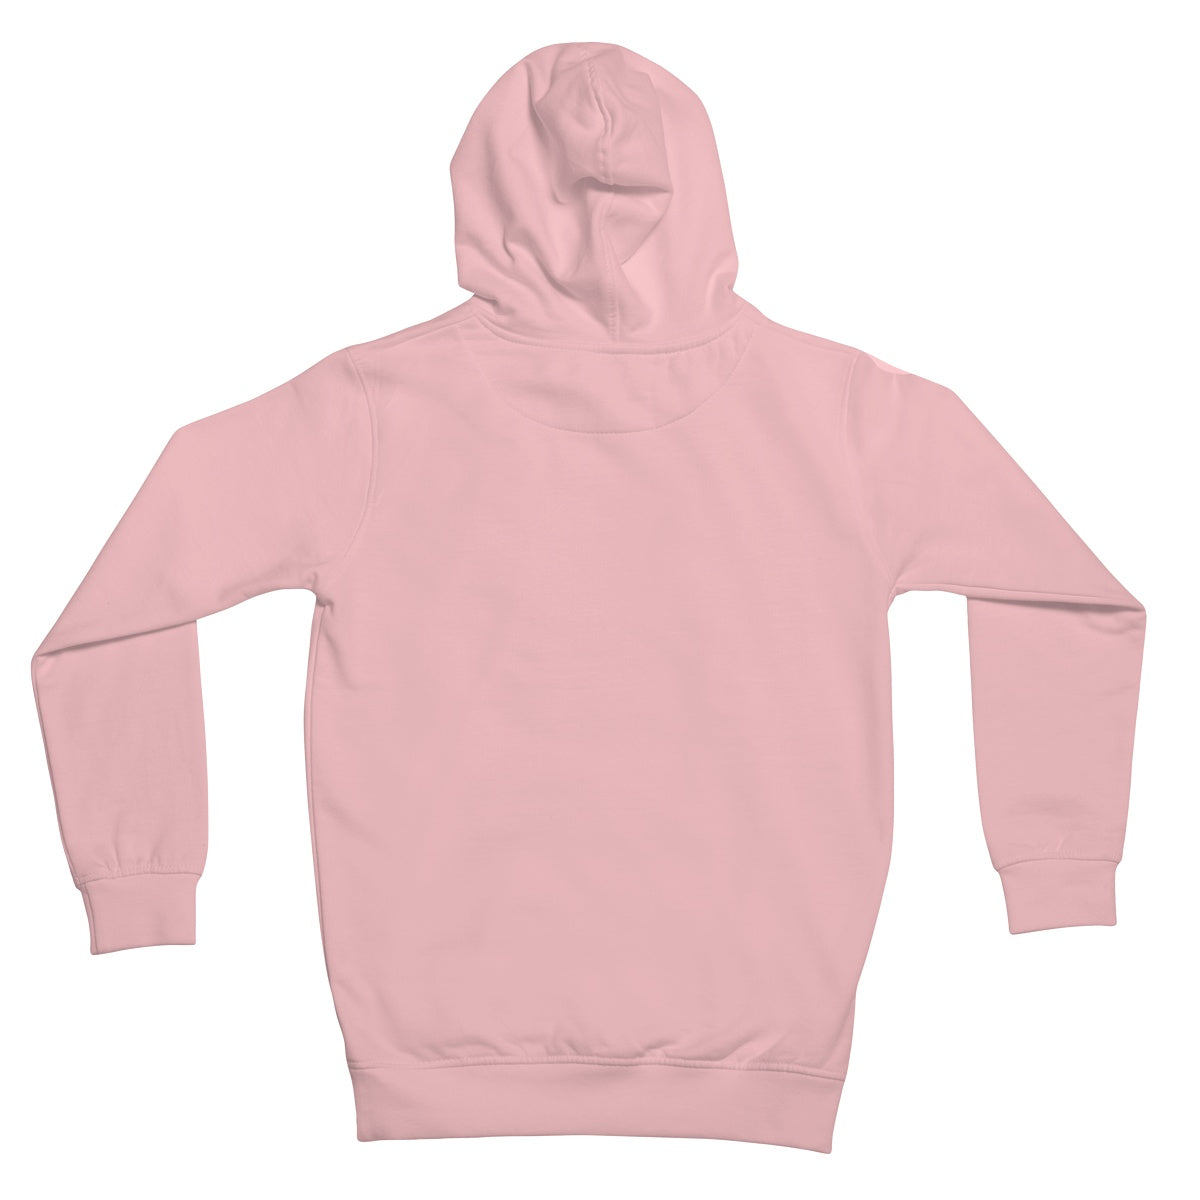 Event Day Kids Retail Hoodie